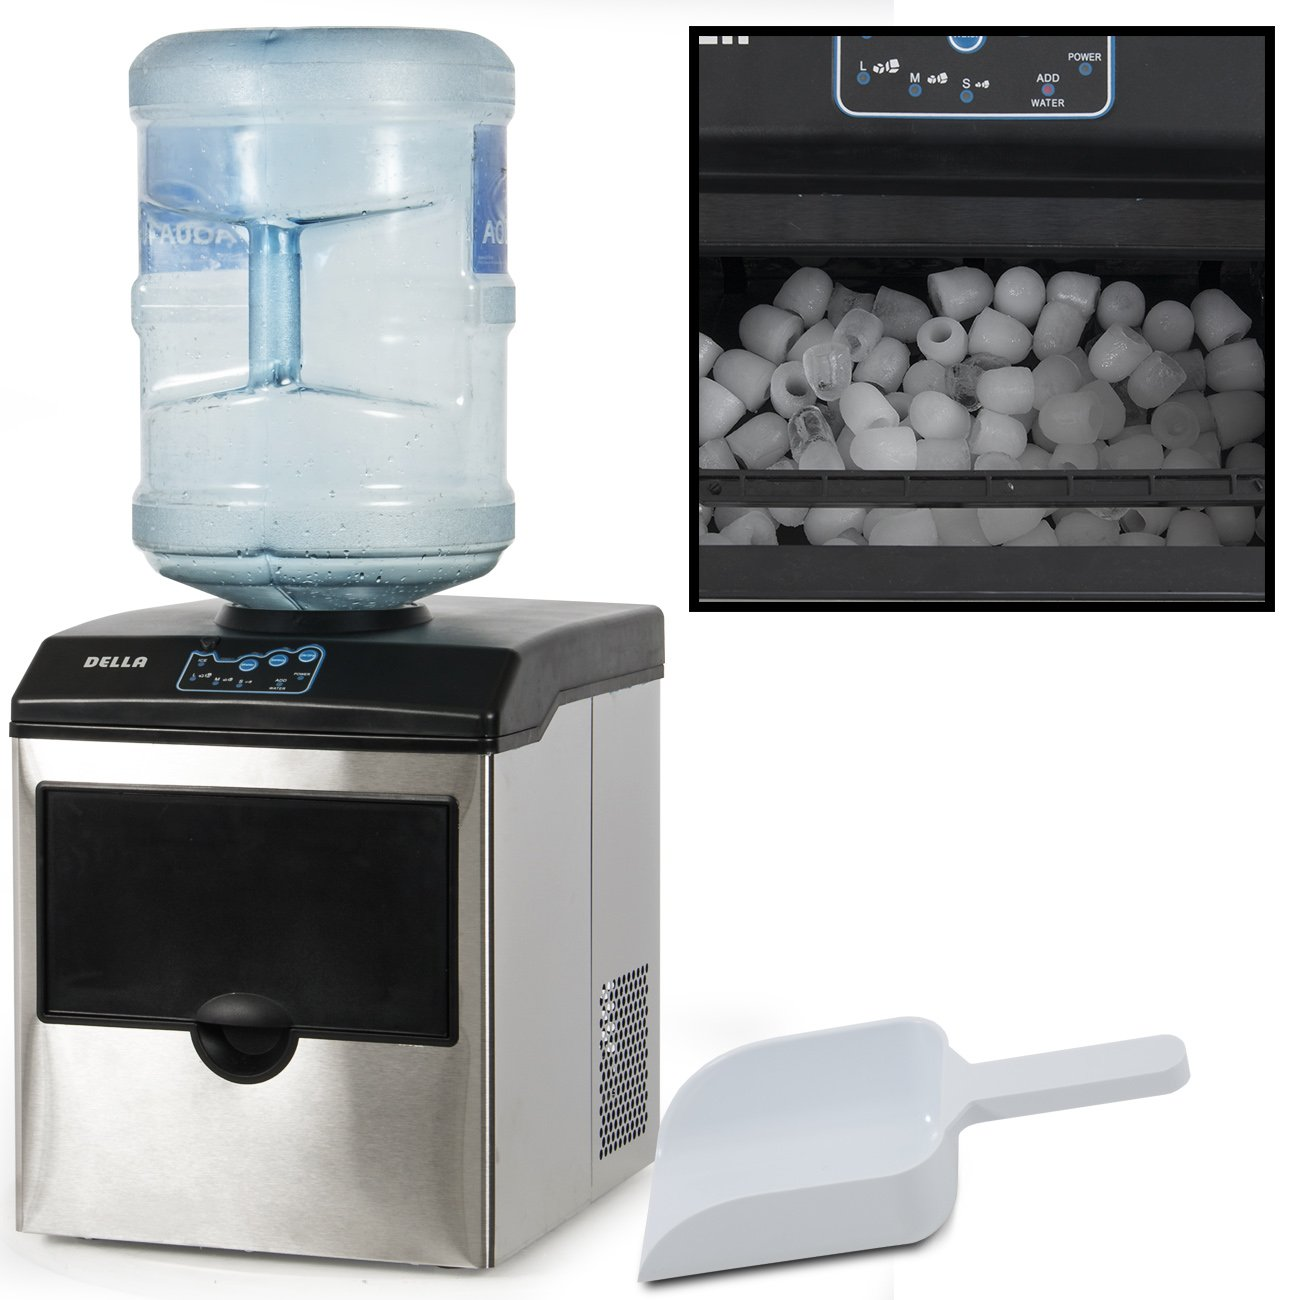 Della Stainless Steel Water Dispenser w/Built-In Ice Maker Machine Counter Portable, 40-Pound